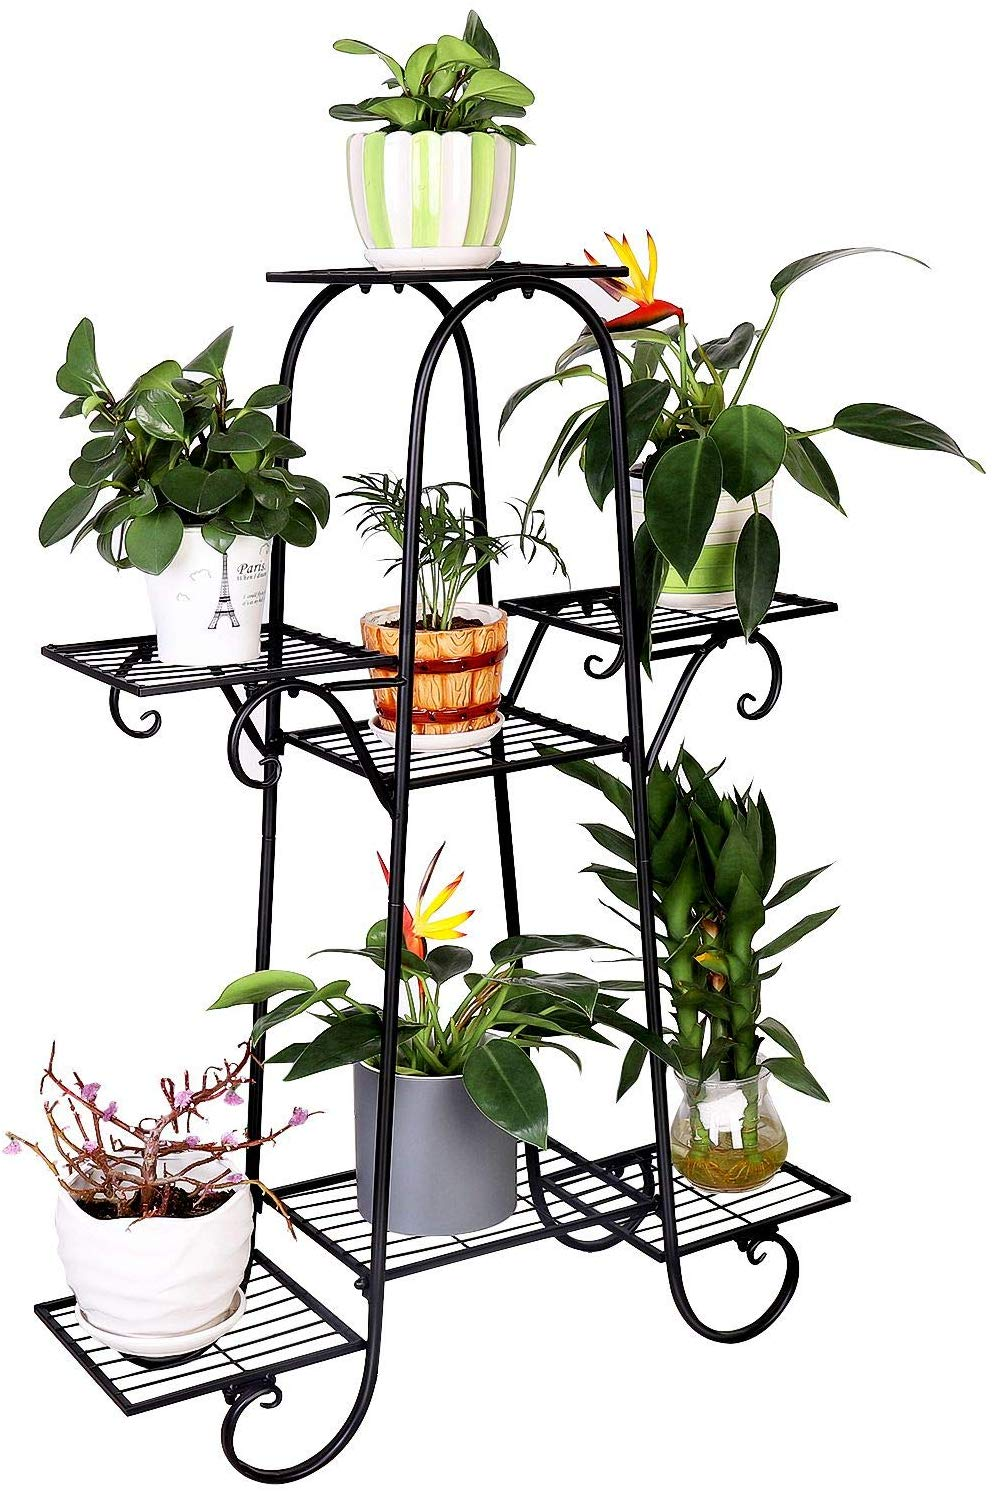 7-Tier Plant Stand by Unho